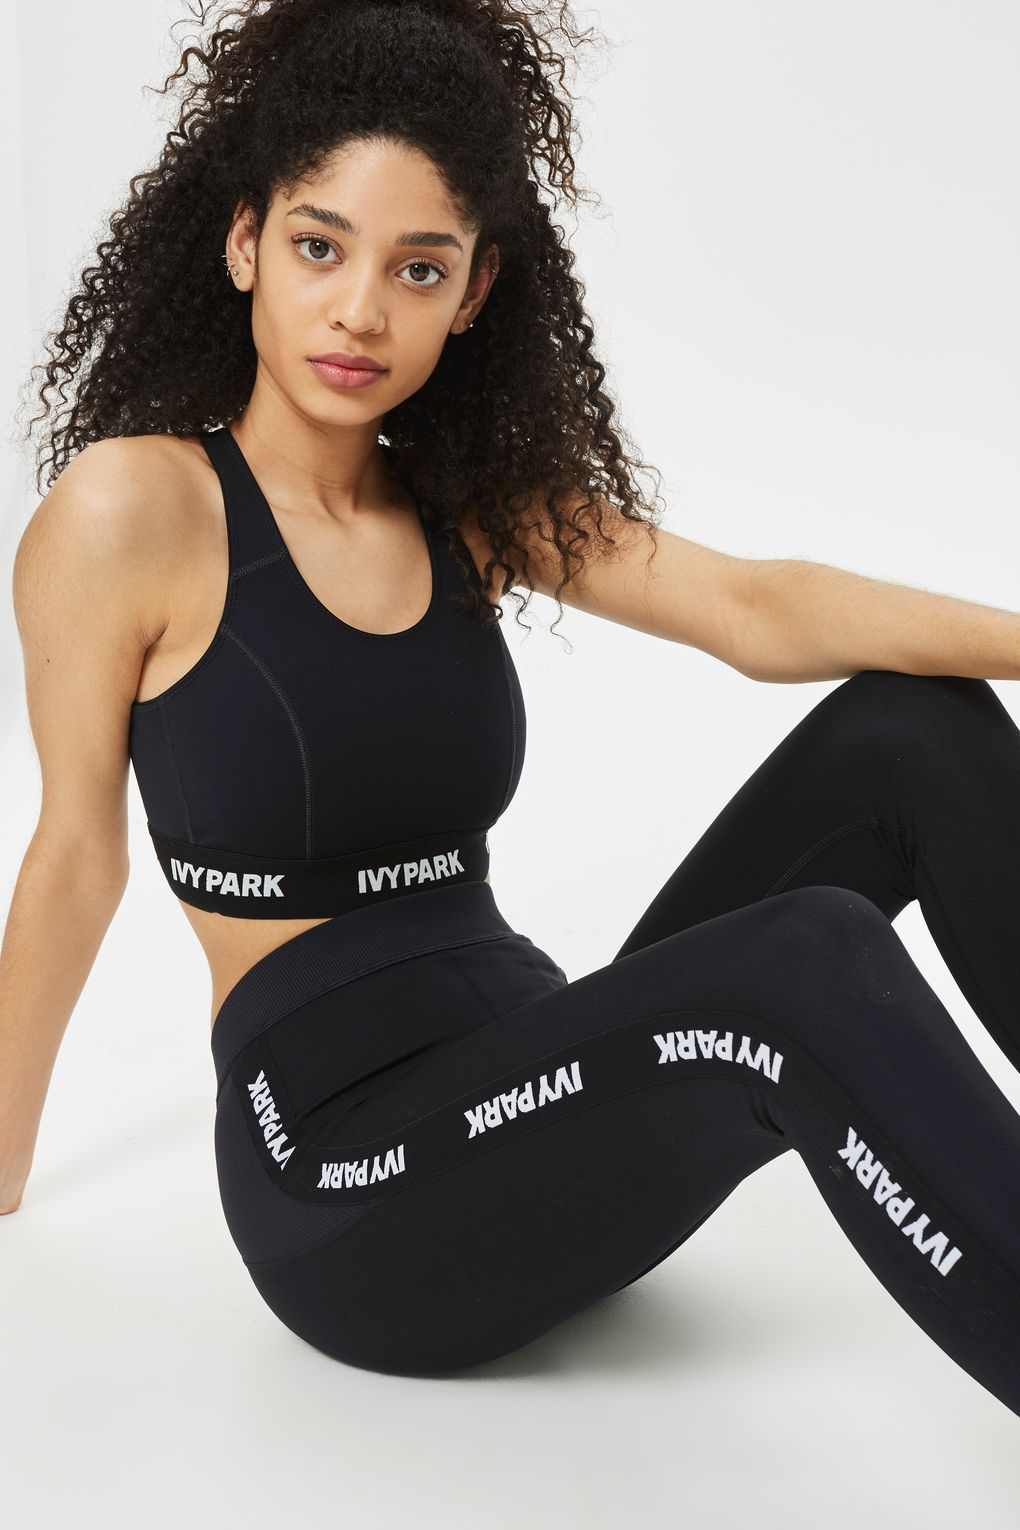 Bra Top and Leggings Set by Ivy Park